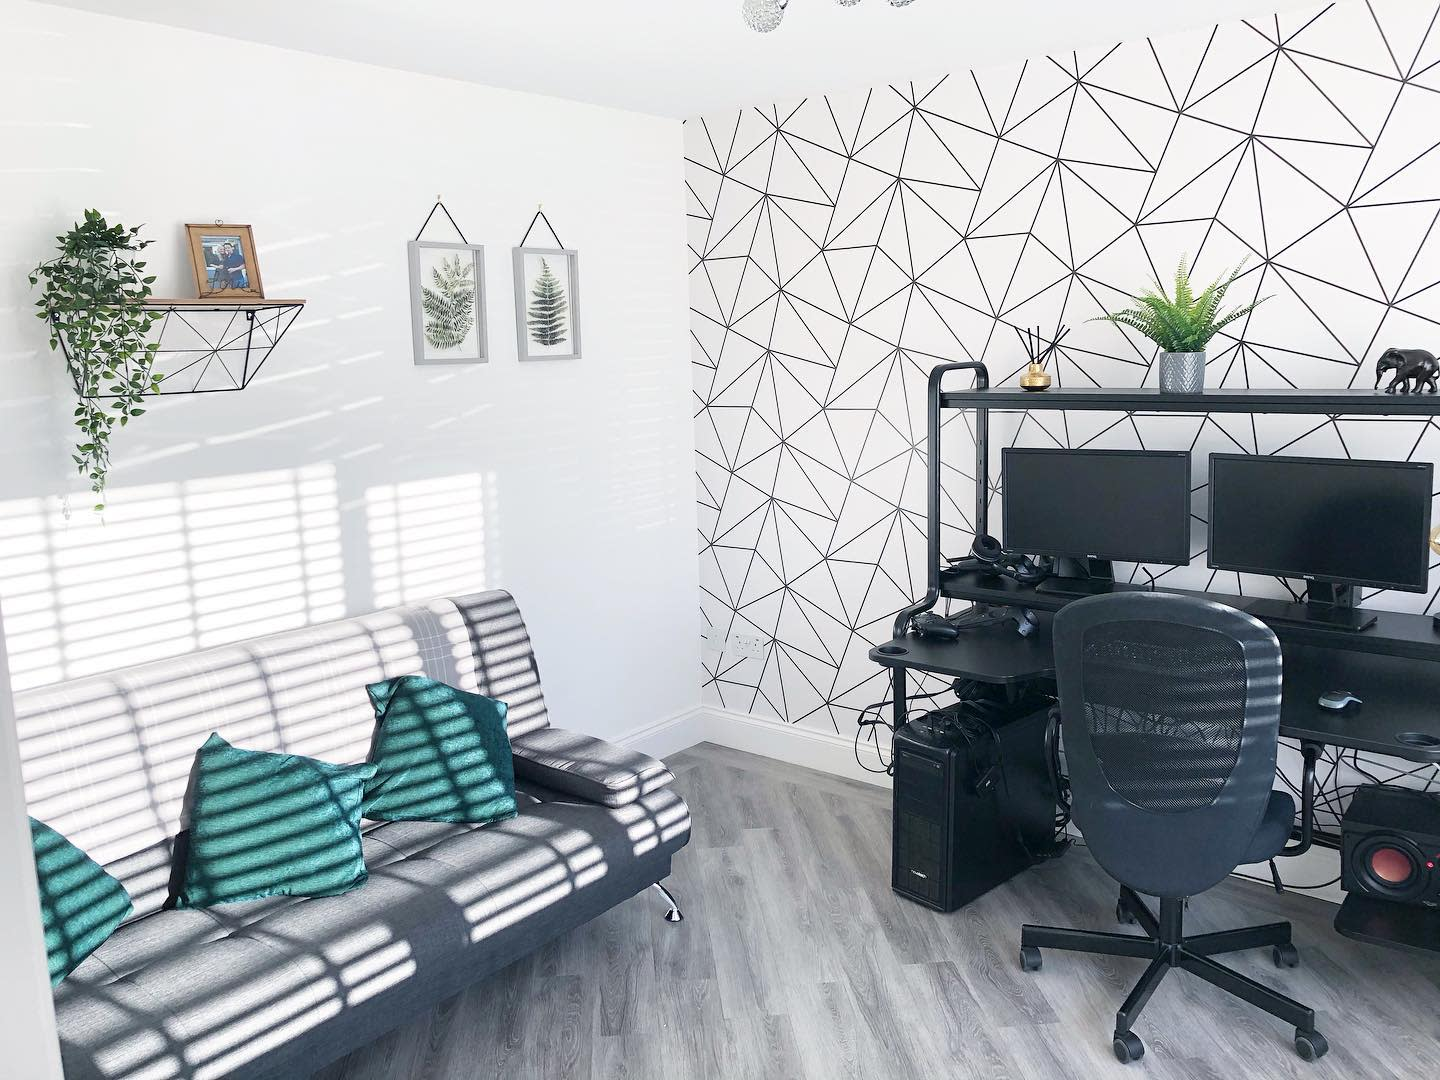 Bedroom Office Design Ideas -the_wright_home